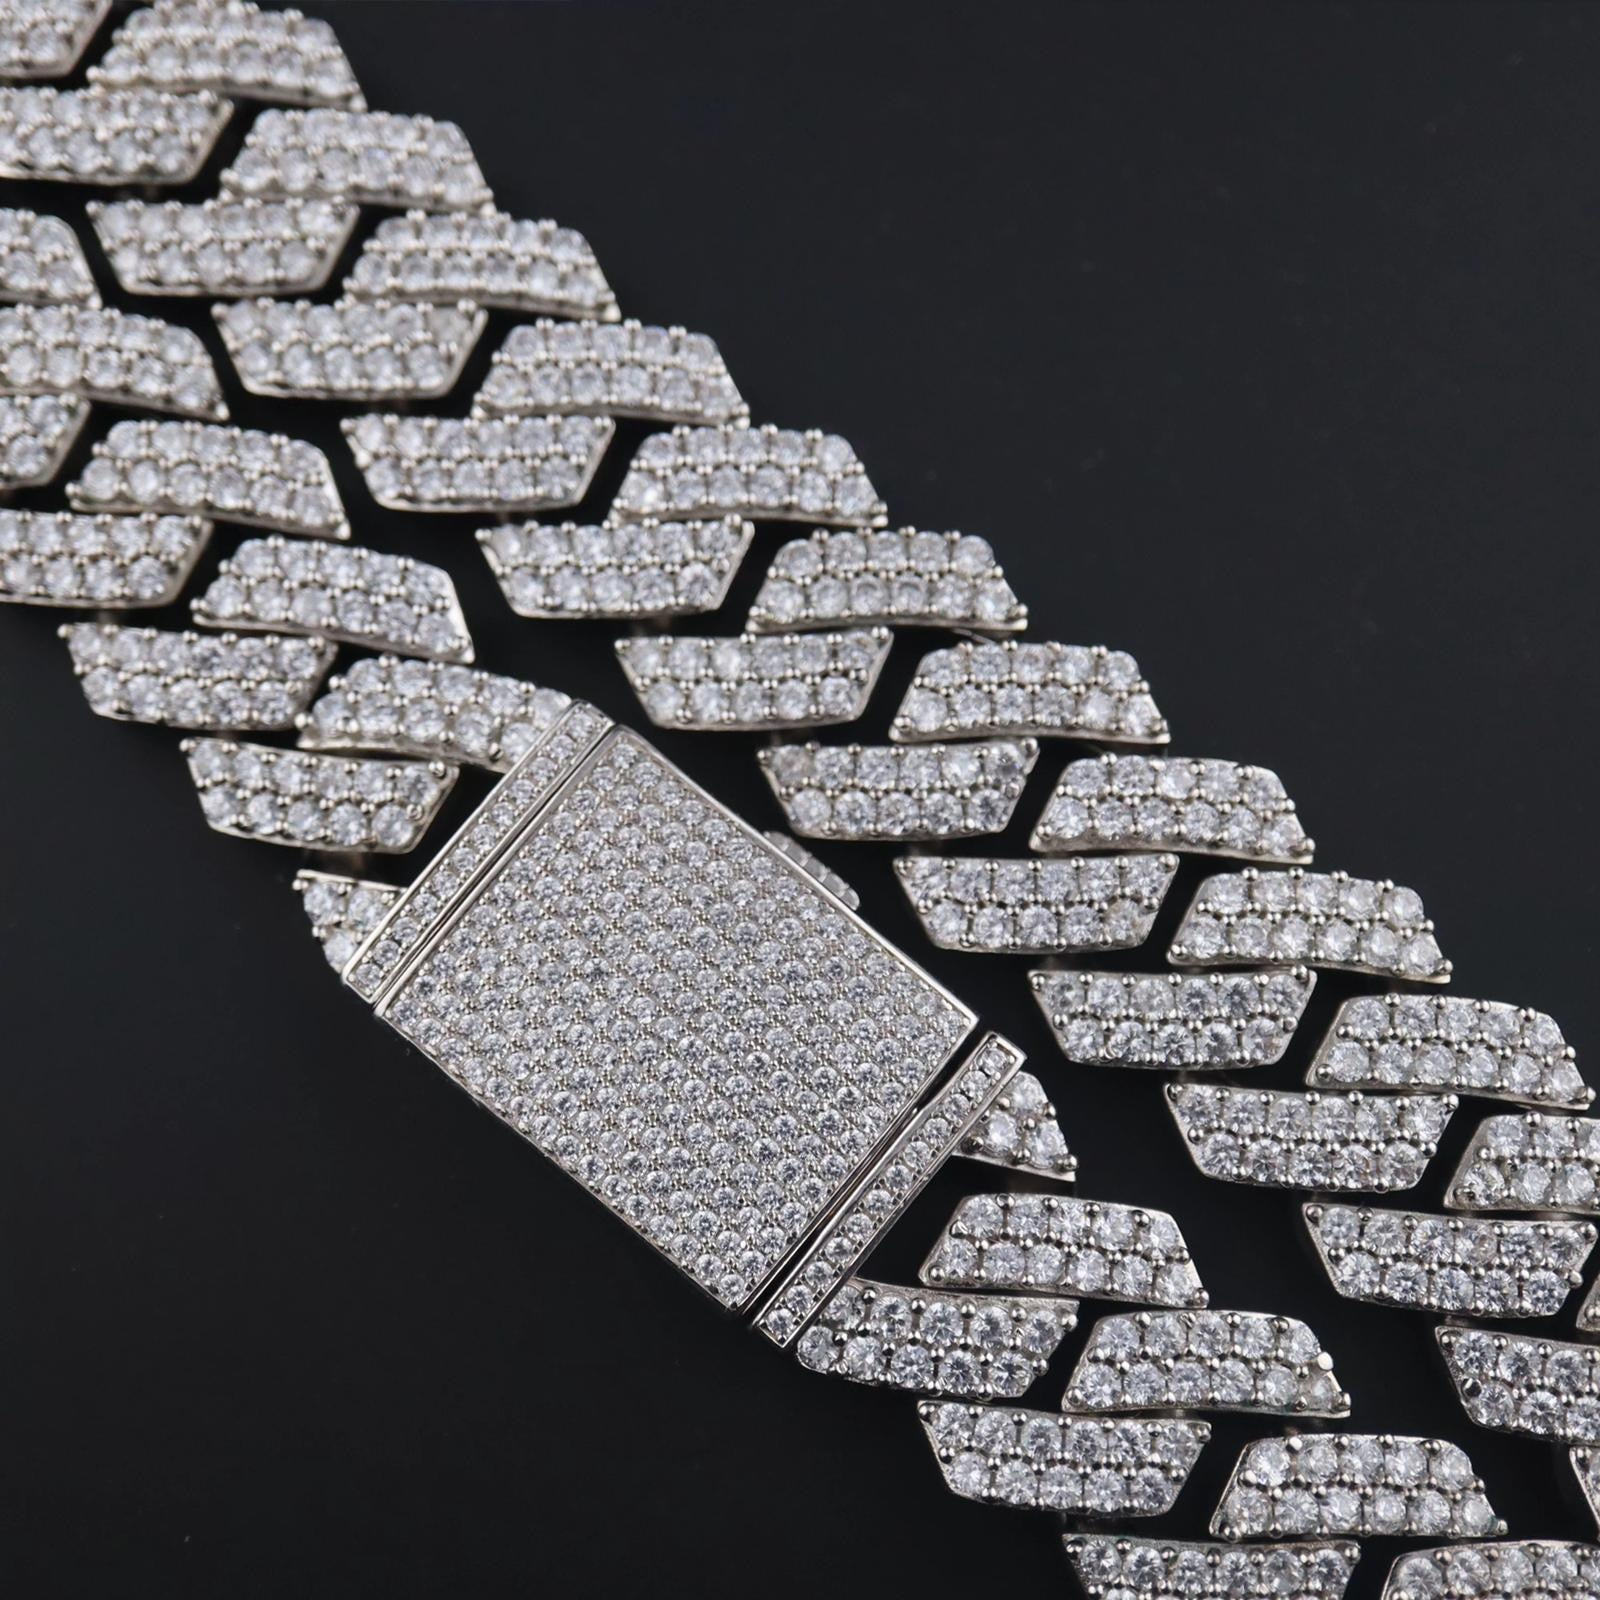 19mm cuban link chain